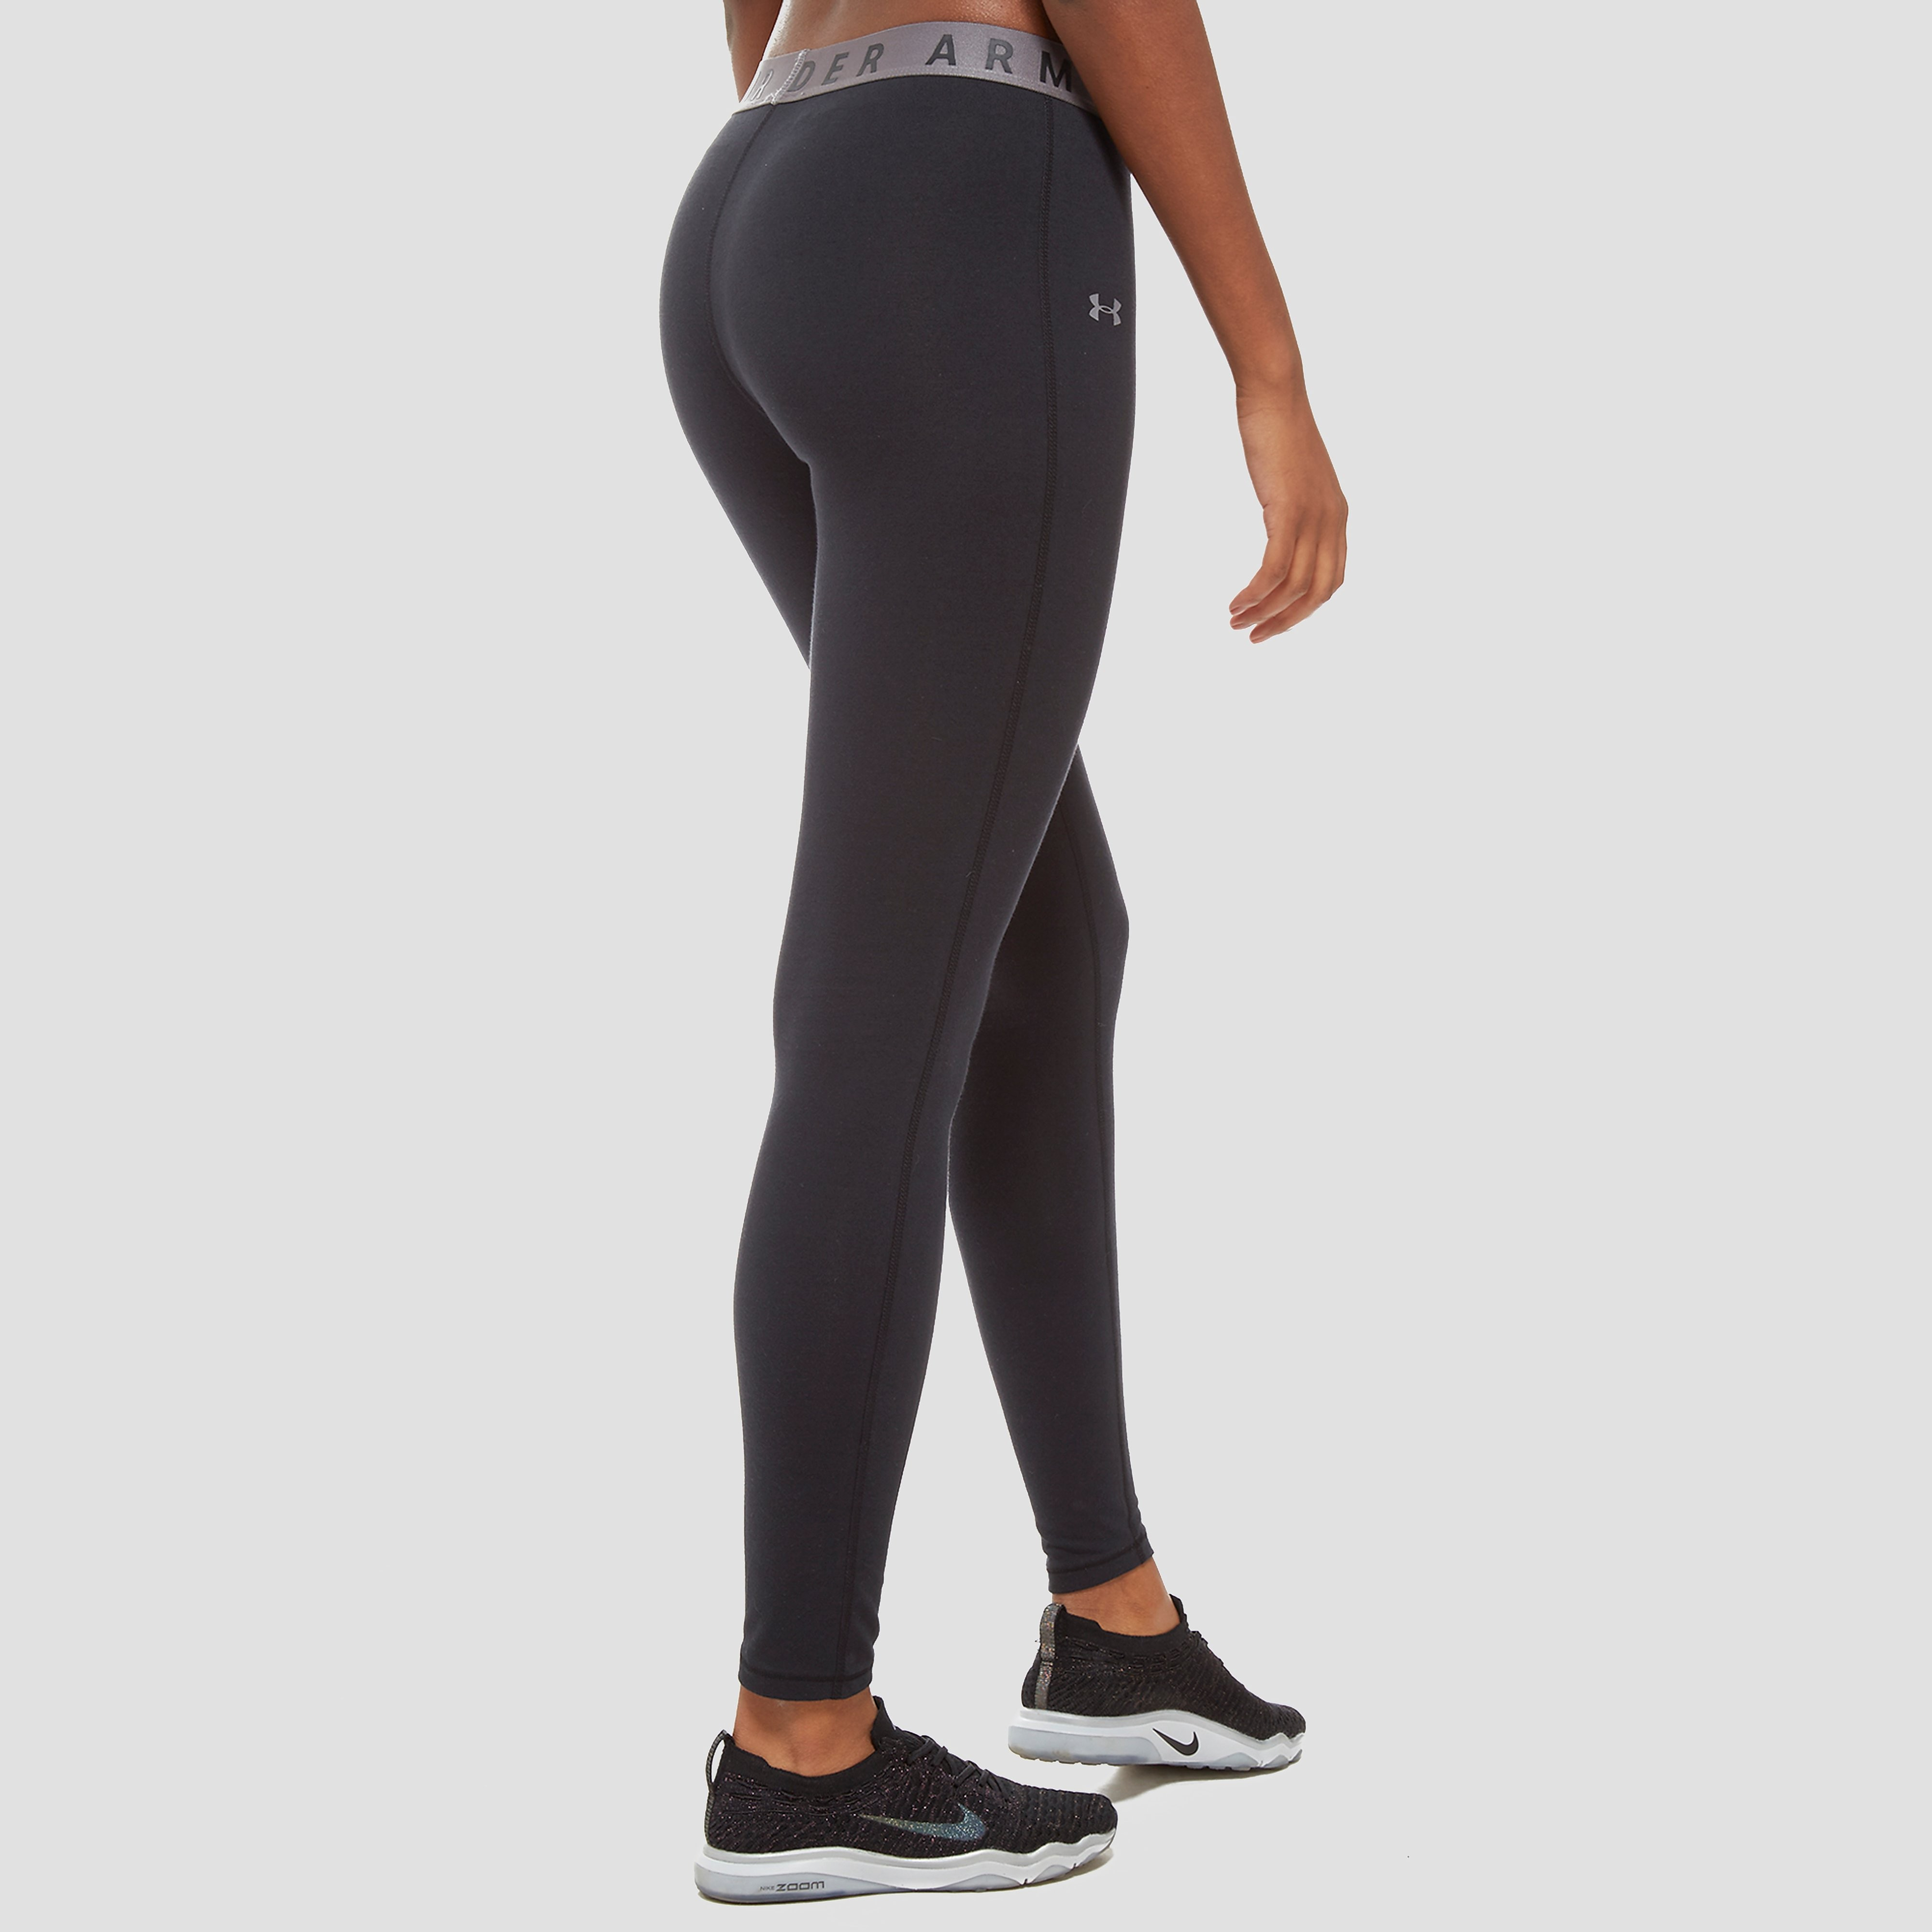 Under Armour Women's Favourite Leggings